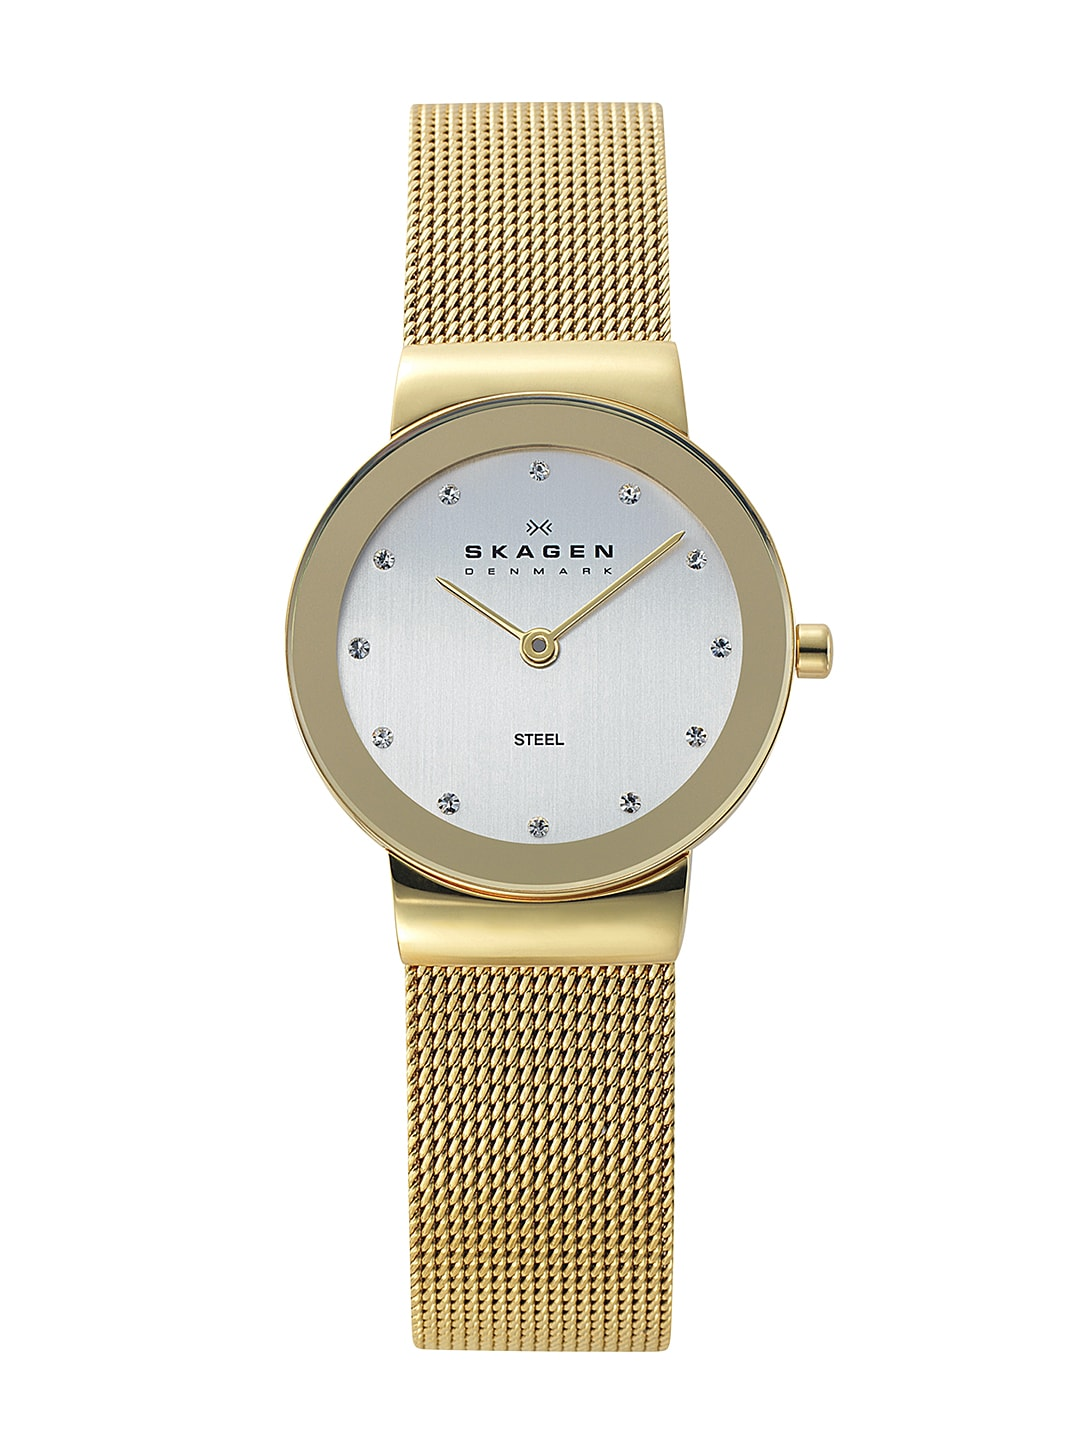 SKAGEN DENMARK Women White Dial Watch 358SGGDI